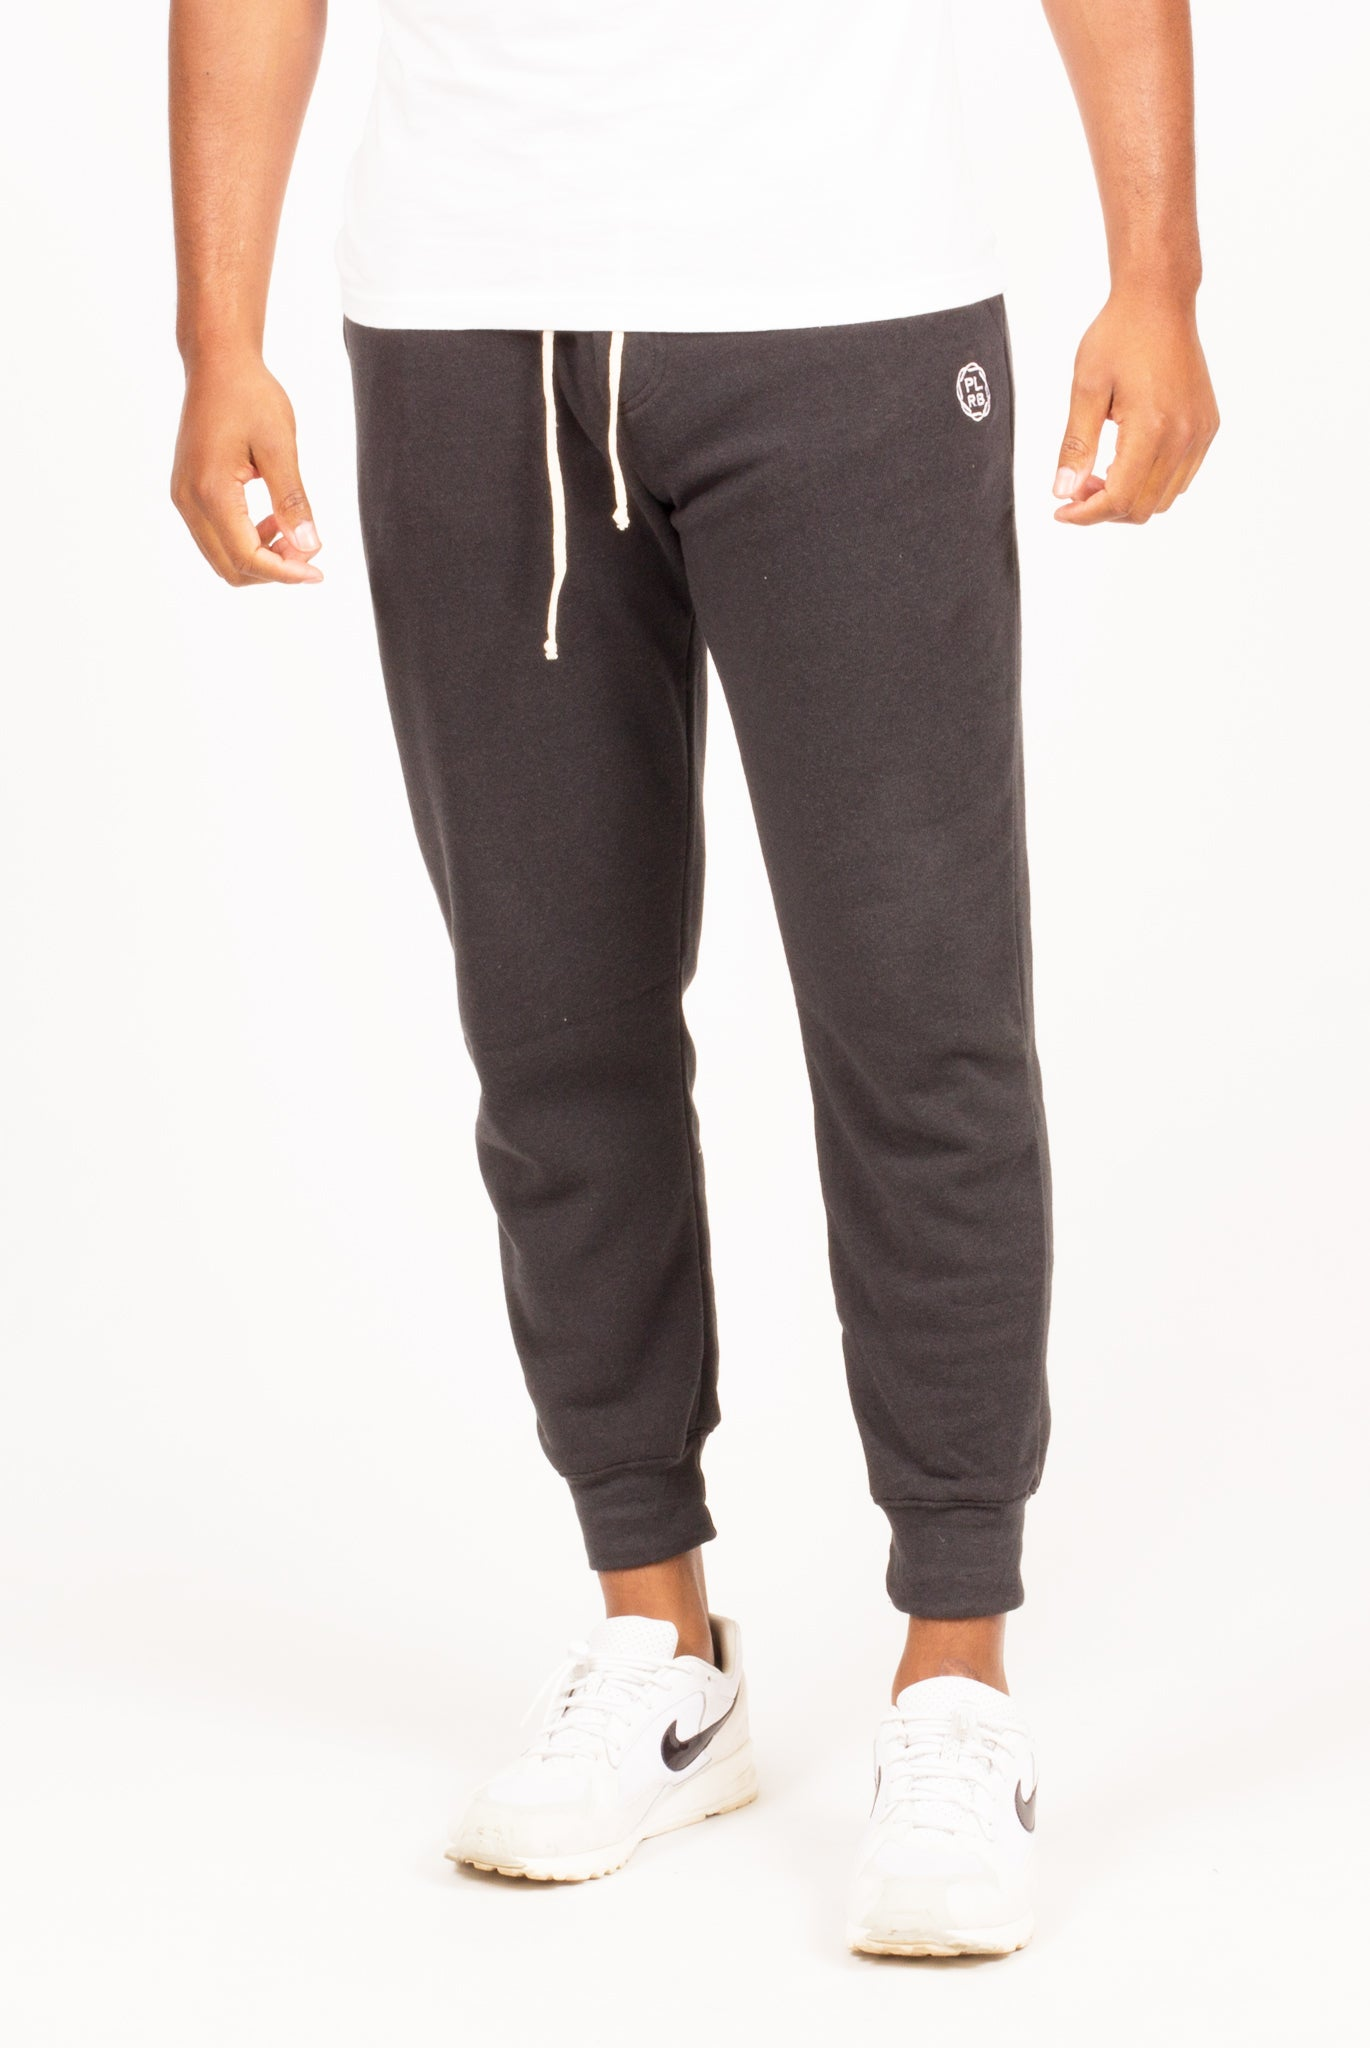 FADED BLACK JOGGERS | Poor Little Rich Boy Clothing